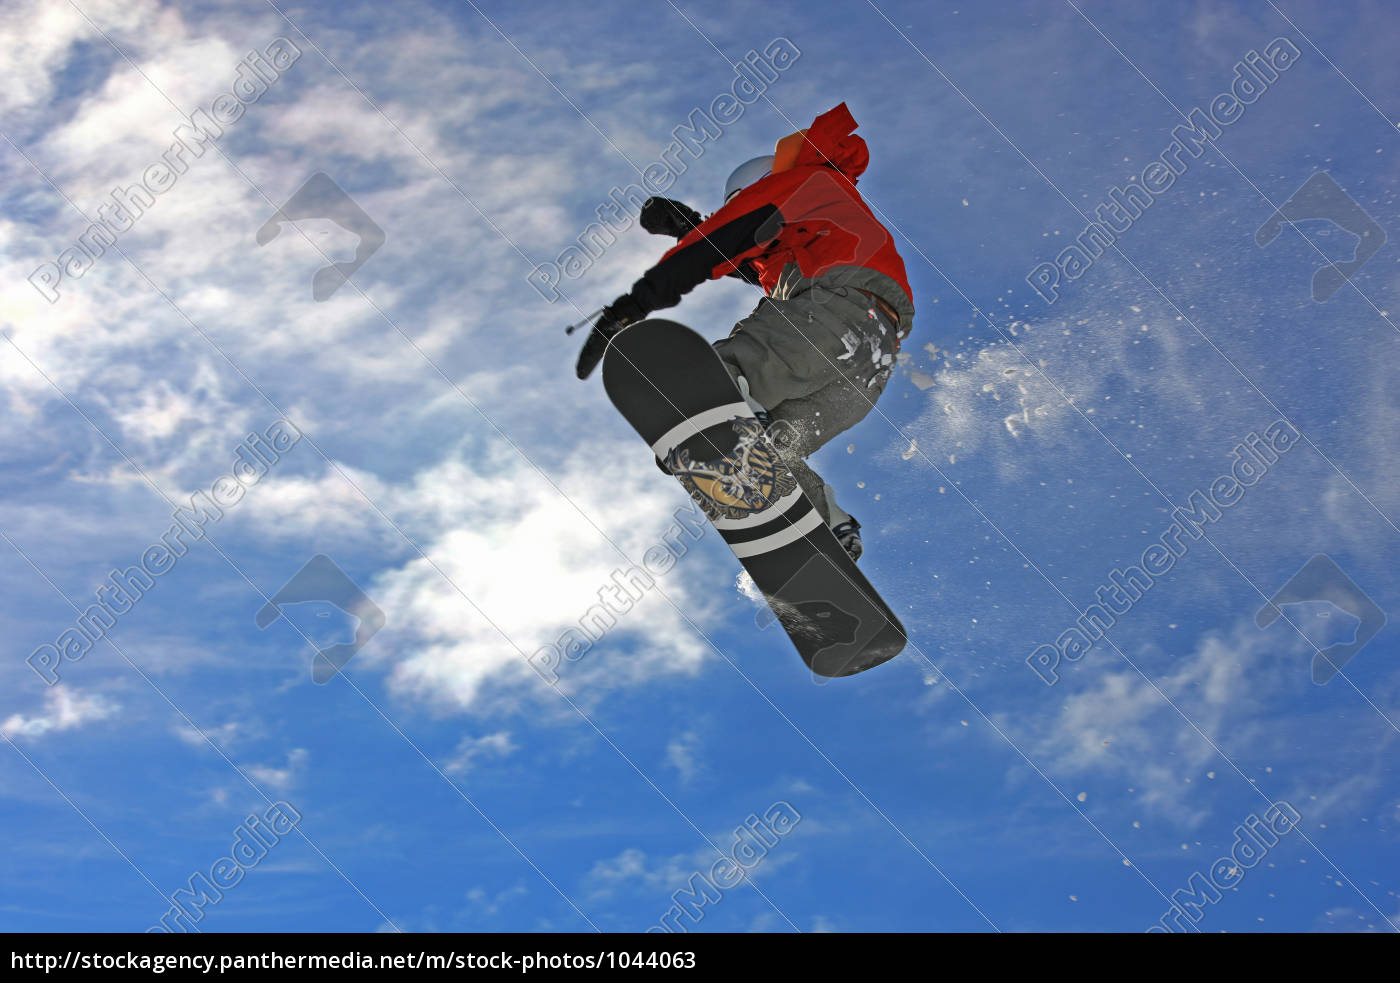 snowboarder, high, in, the, air - 1044063